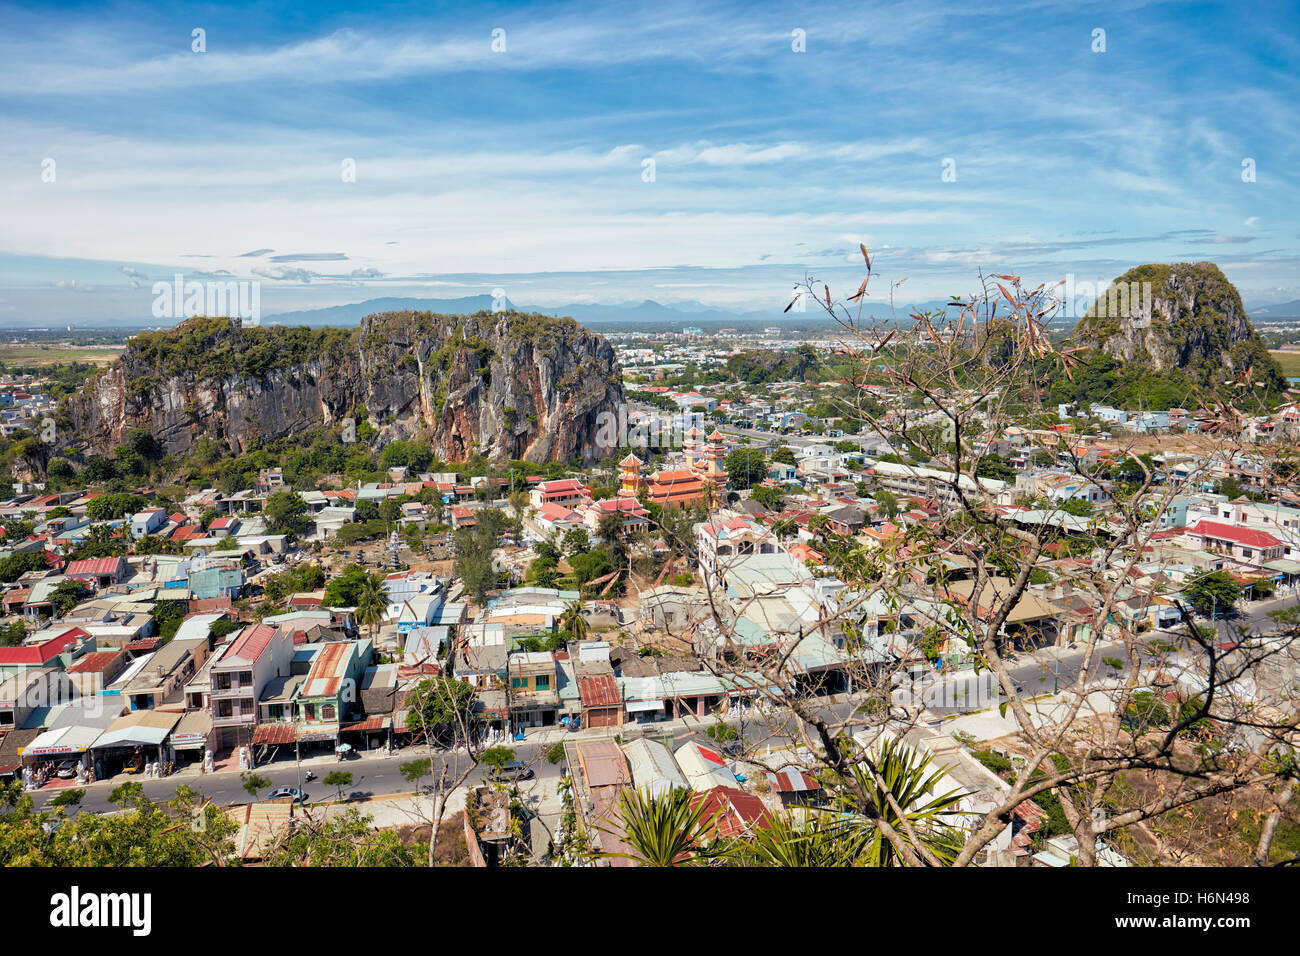 Elevated view of The Marble Mountains. Da Nang, Vietnam. - Stock Image